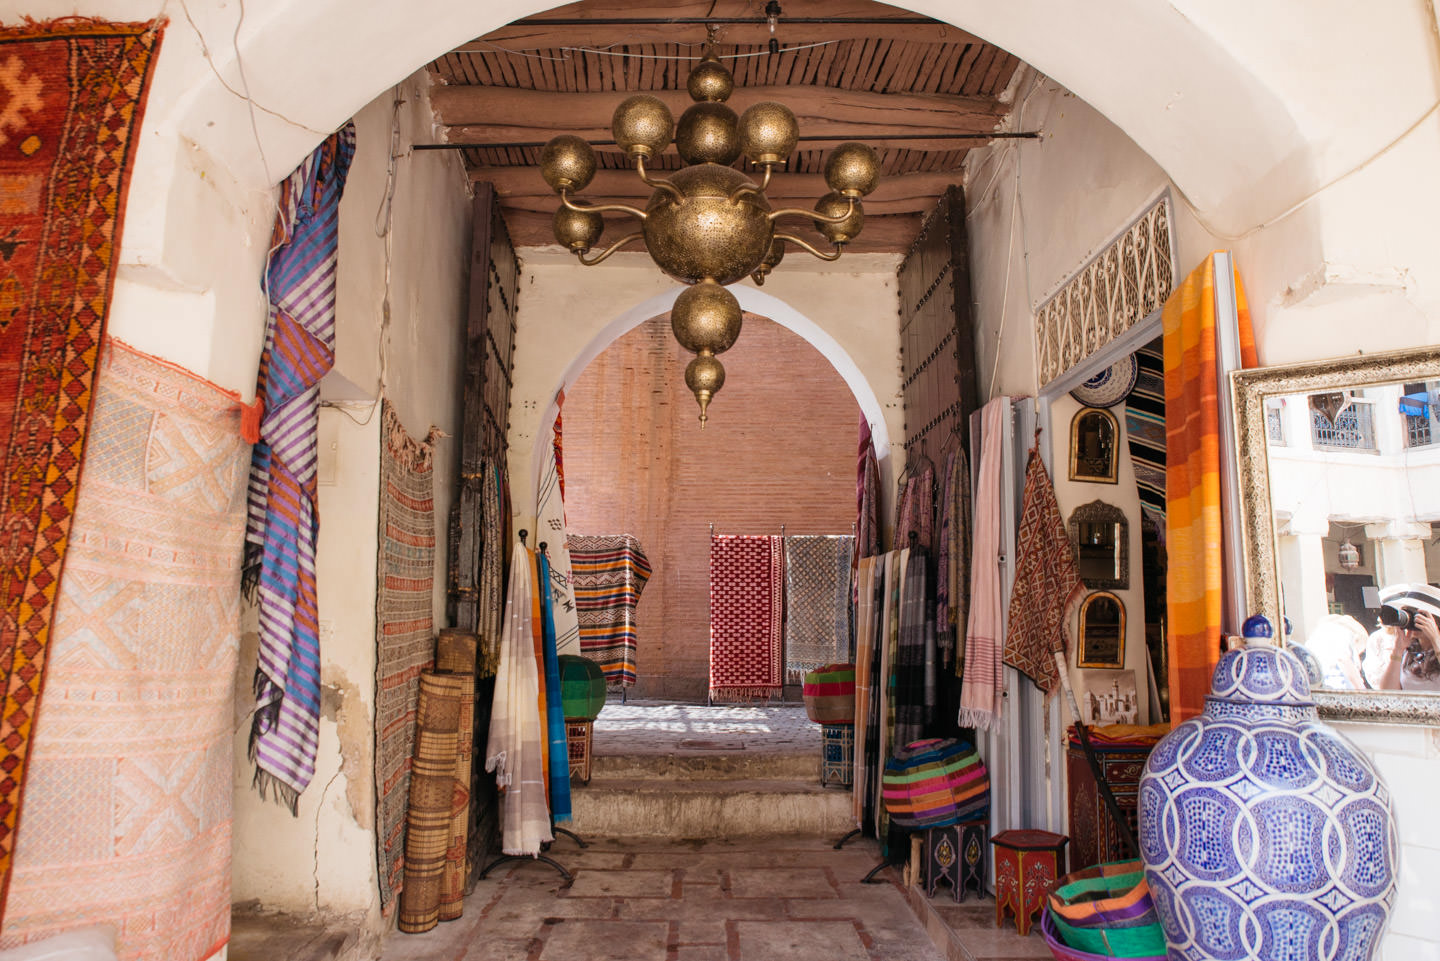 Blog-Mode-And-The-City-Lifestyle-Le-Madarin-Oriental-Marrakech-32